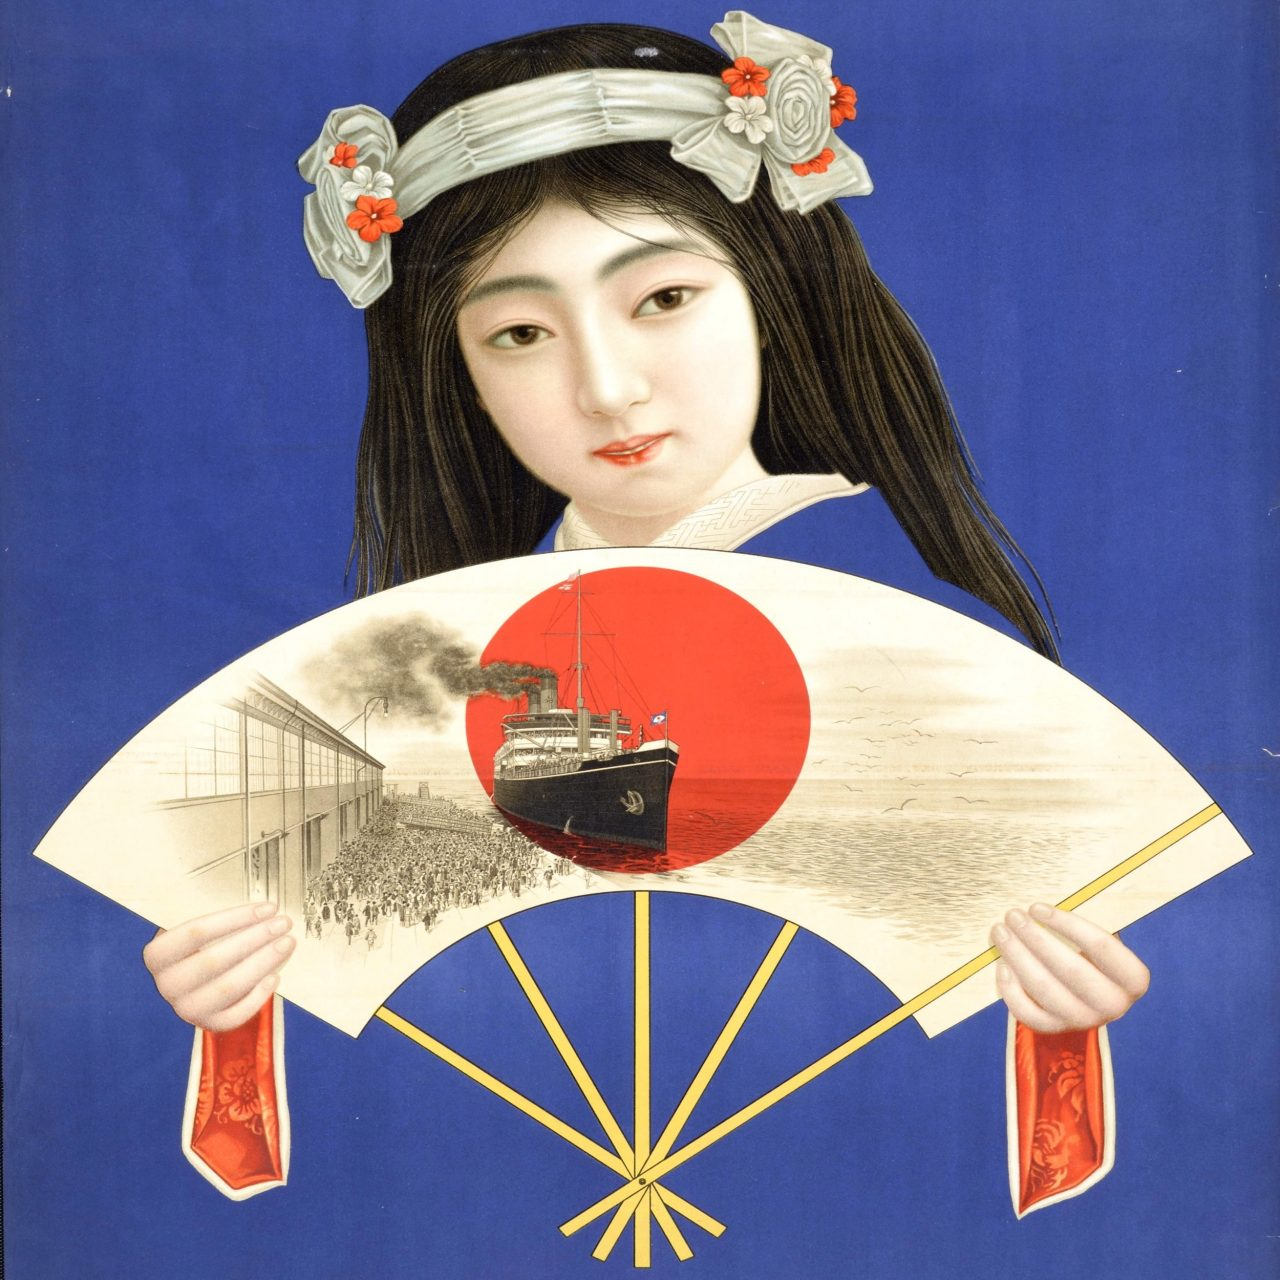 Taishō Era Posters: Modernism In Japan, 1912 to 1926